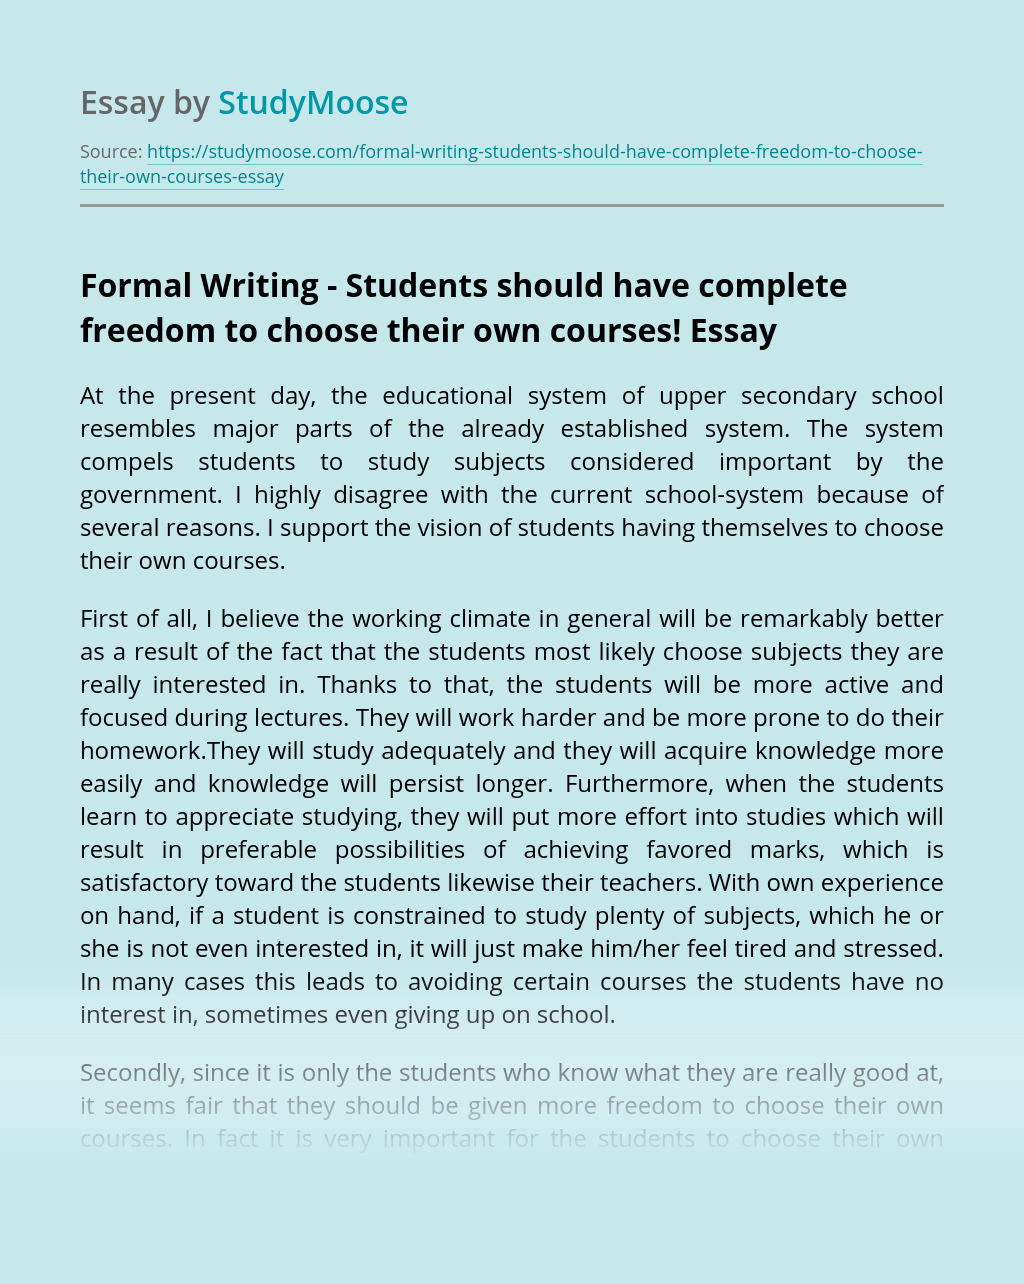 Formal Writing - Students should have complete freedom to choose their own courses!